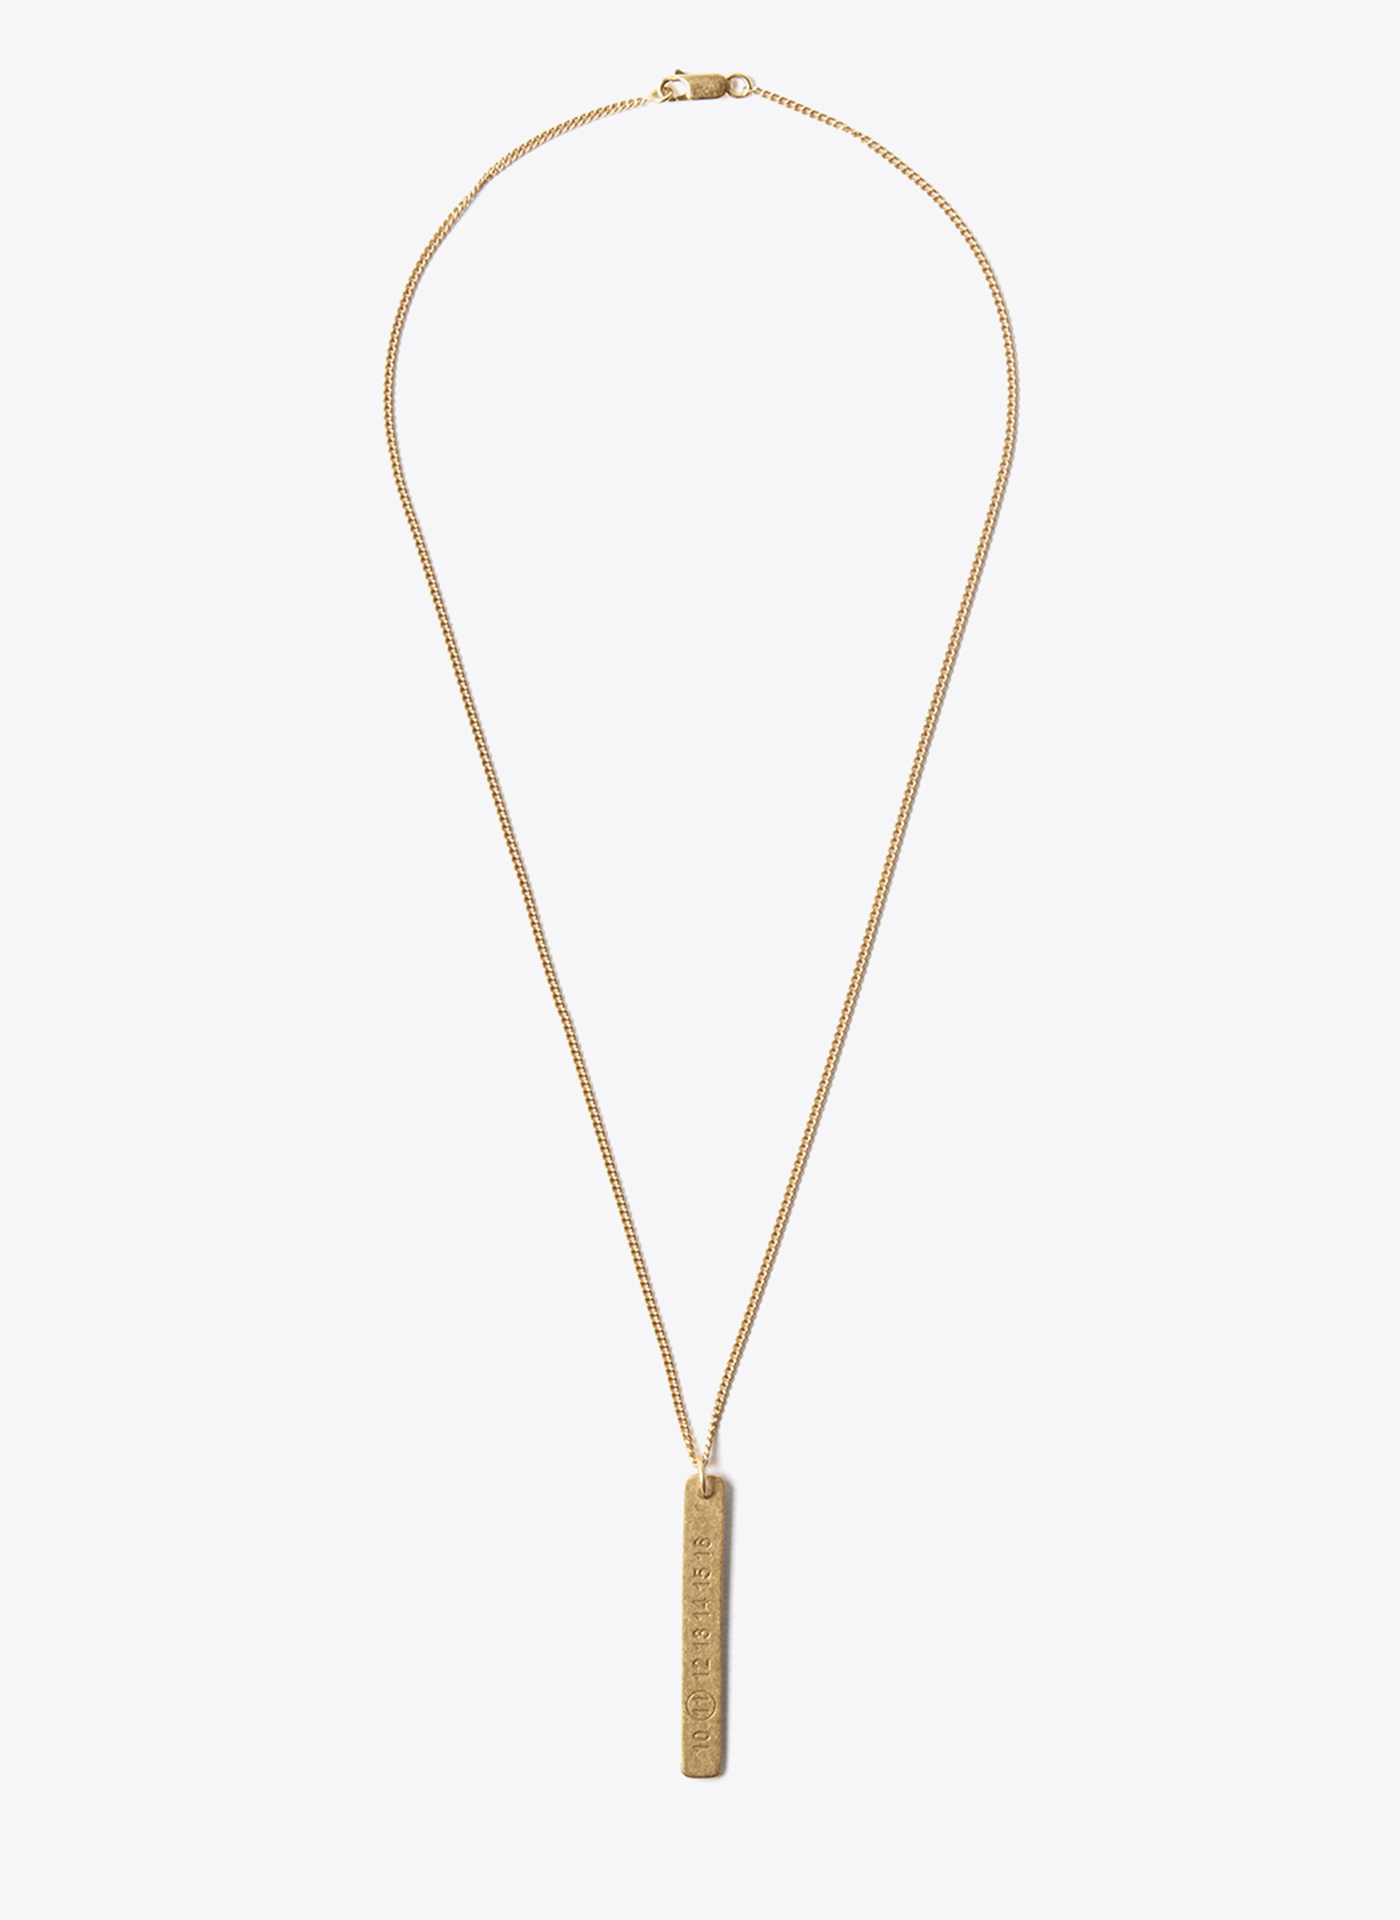 gold necklace on white background